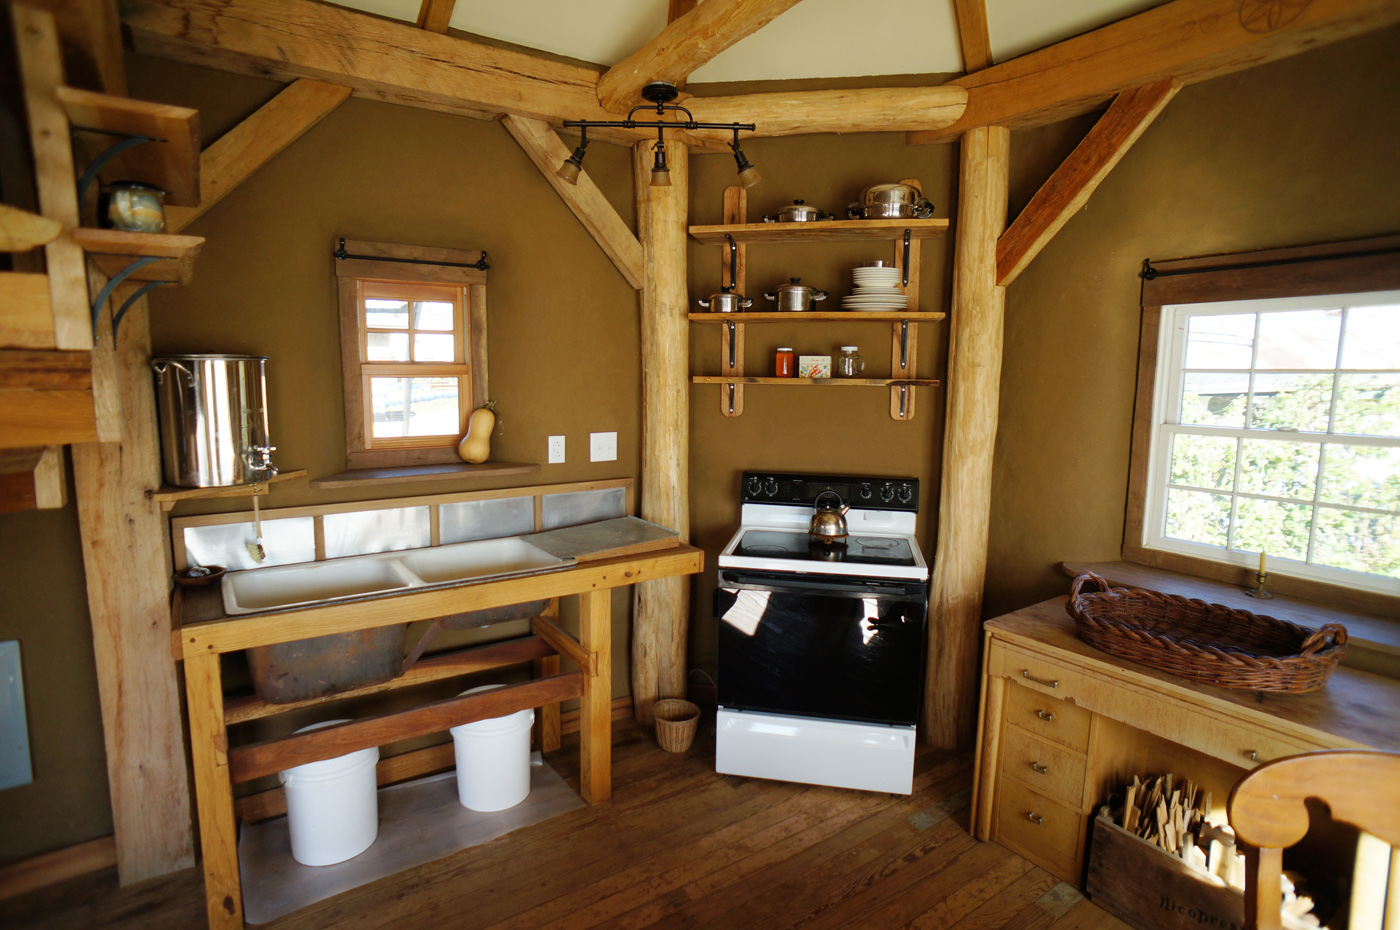 timber frame straw bale house for sale natural home for sale straw bale house kitchen area